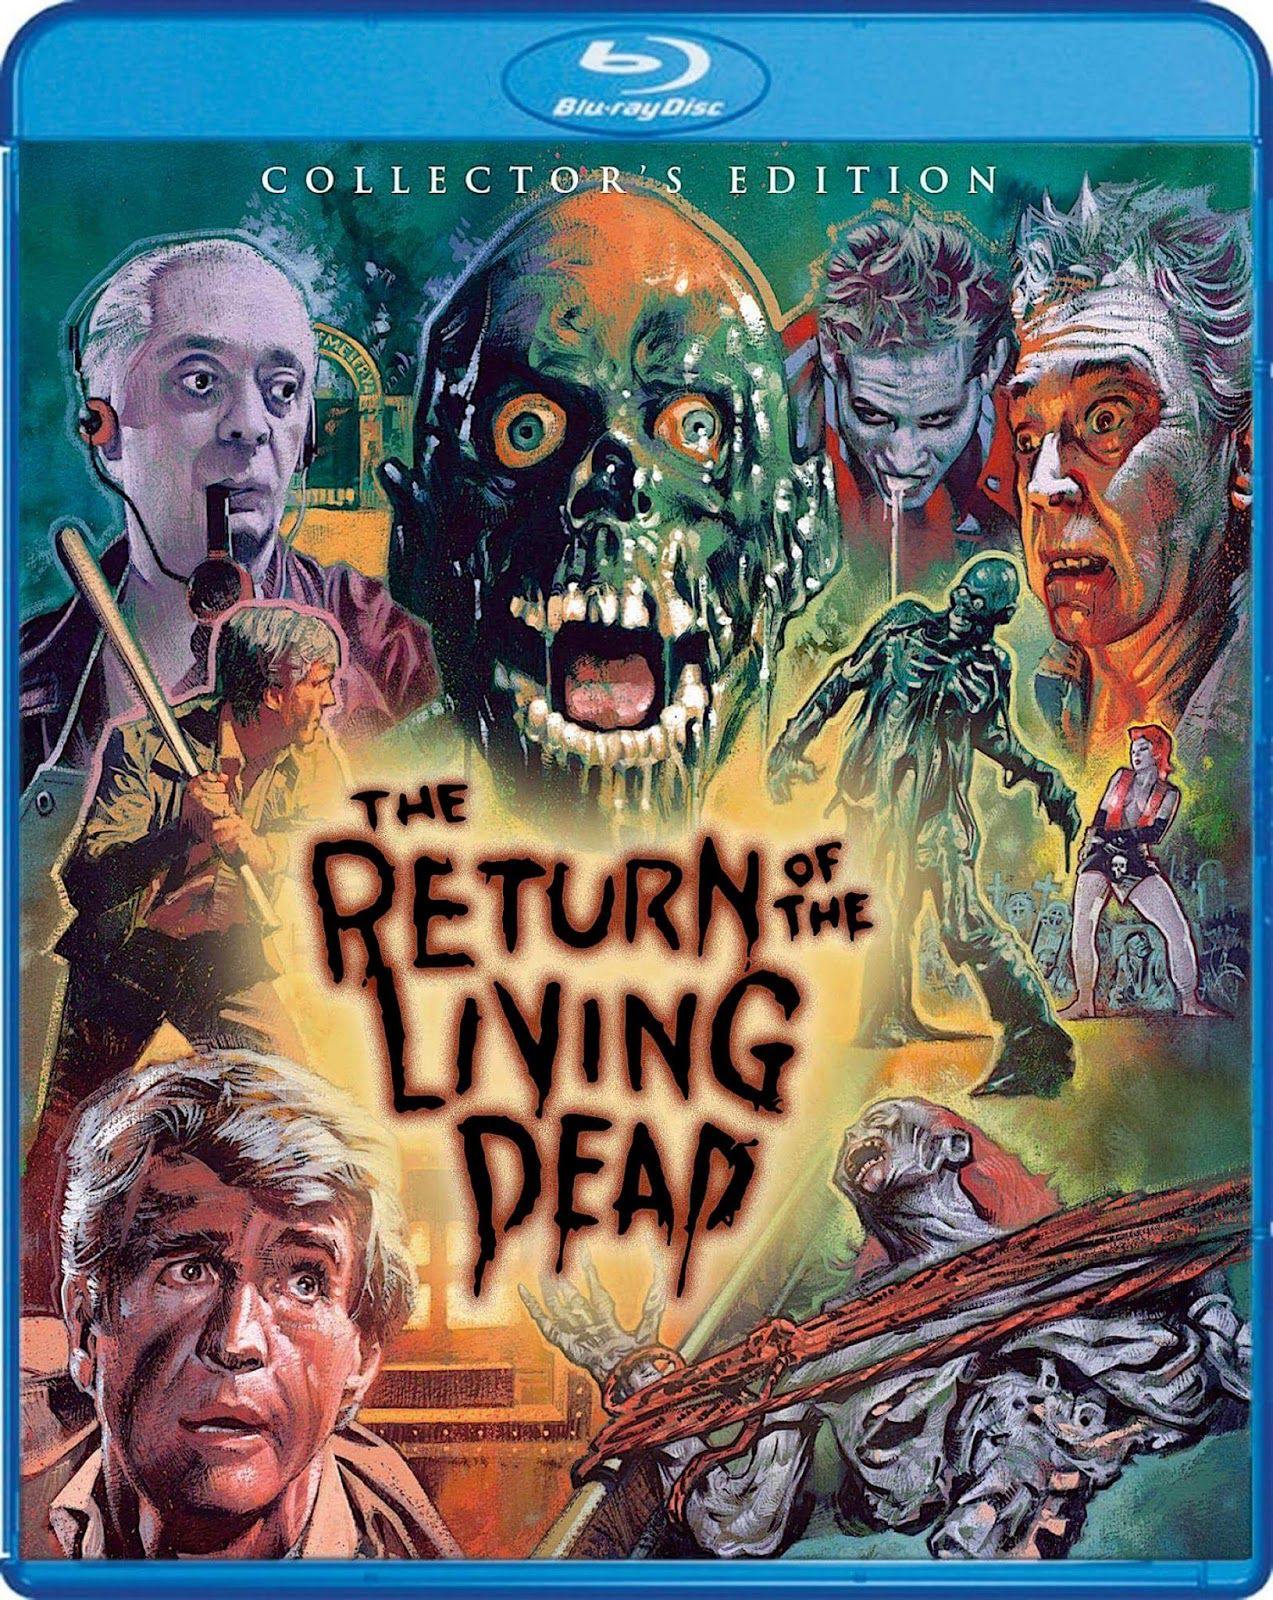 THE RETURN OF THE LIVING DEAD COLLECTOR'S EDITION SCREAM